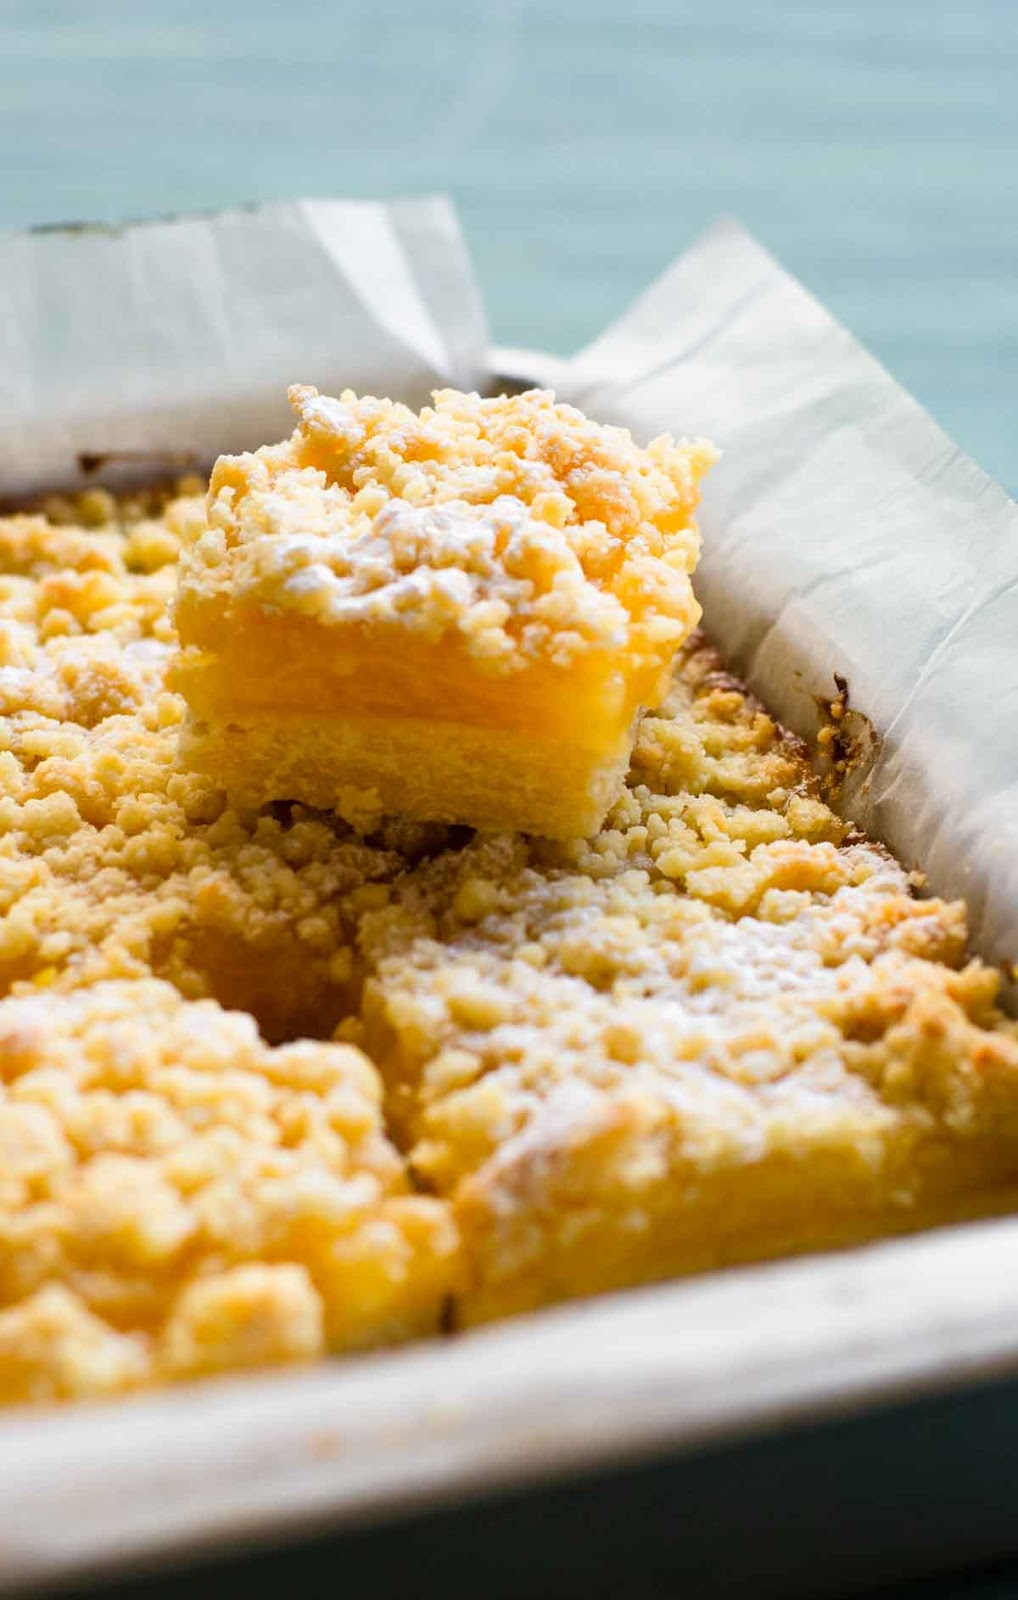 Lemon curd bars photo